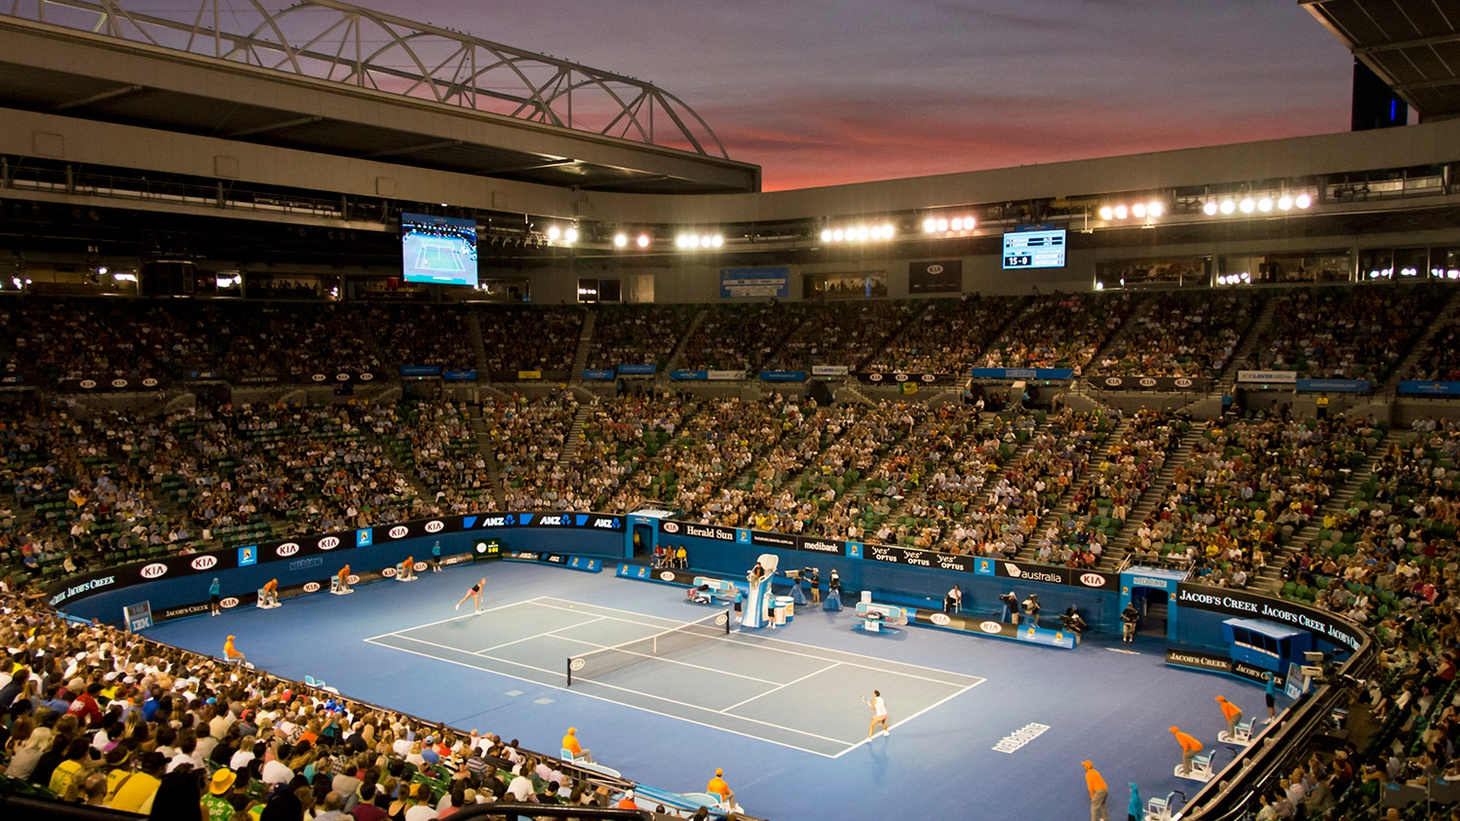 As the Australian Open gets under way, there are new reports that gambling syndicates are fixing high-level professional tennis matches.